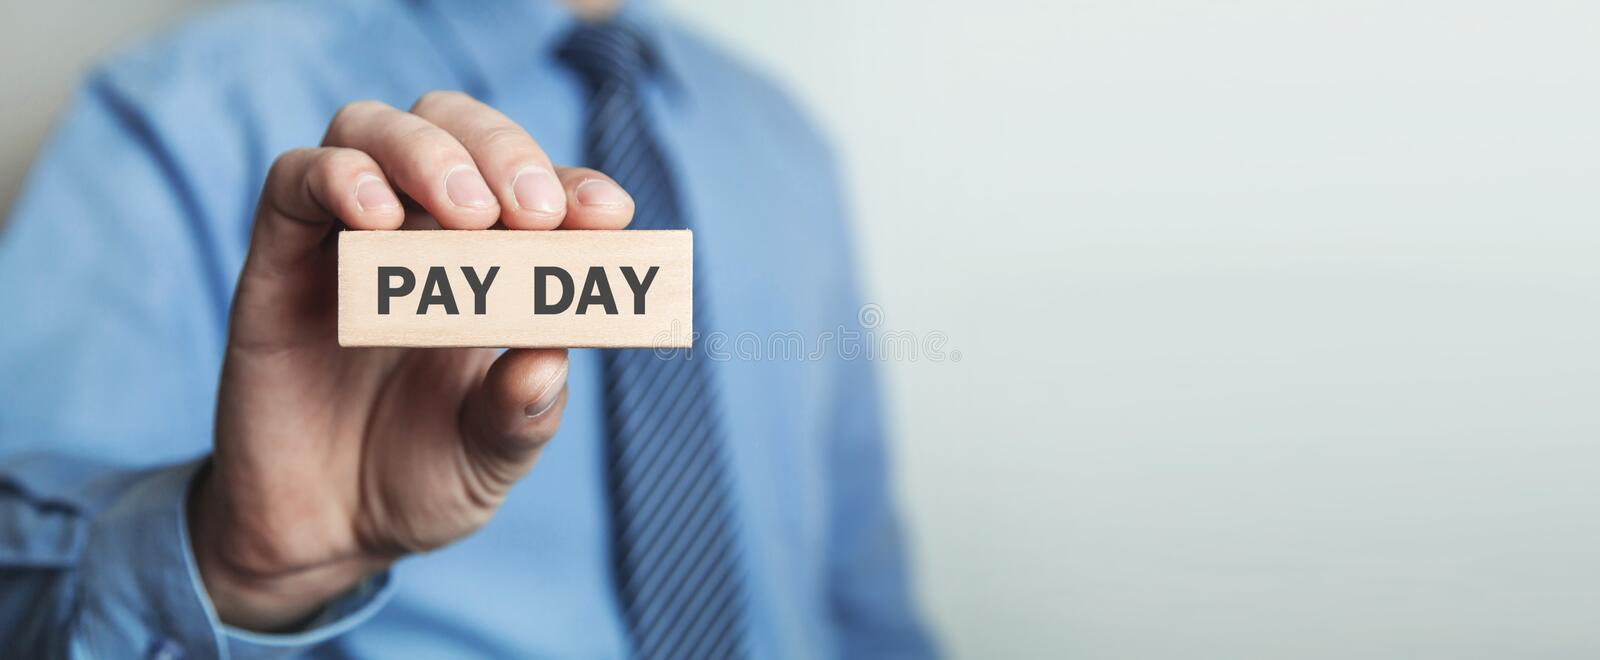 Man showing wooden block. Pay Day. Business concept stock photo